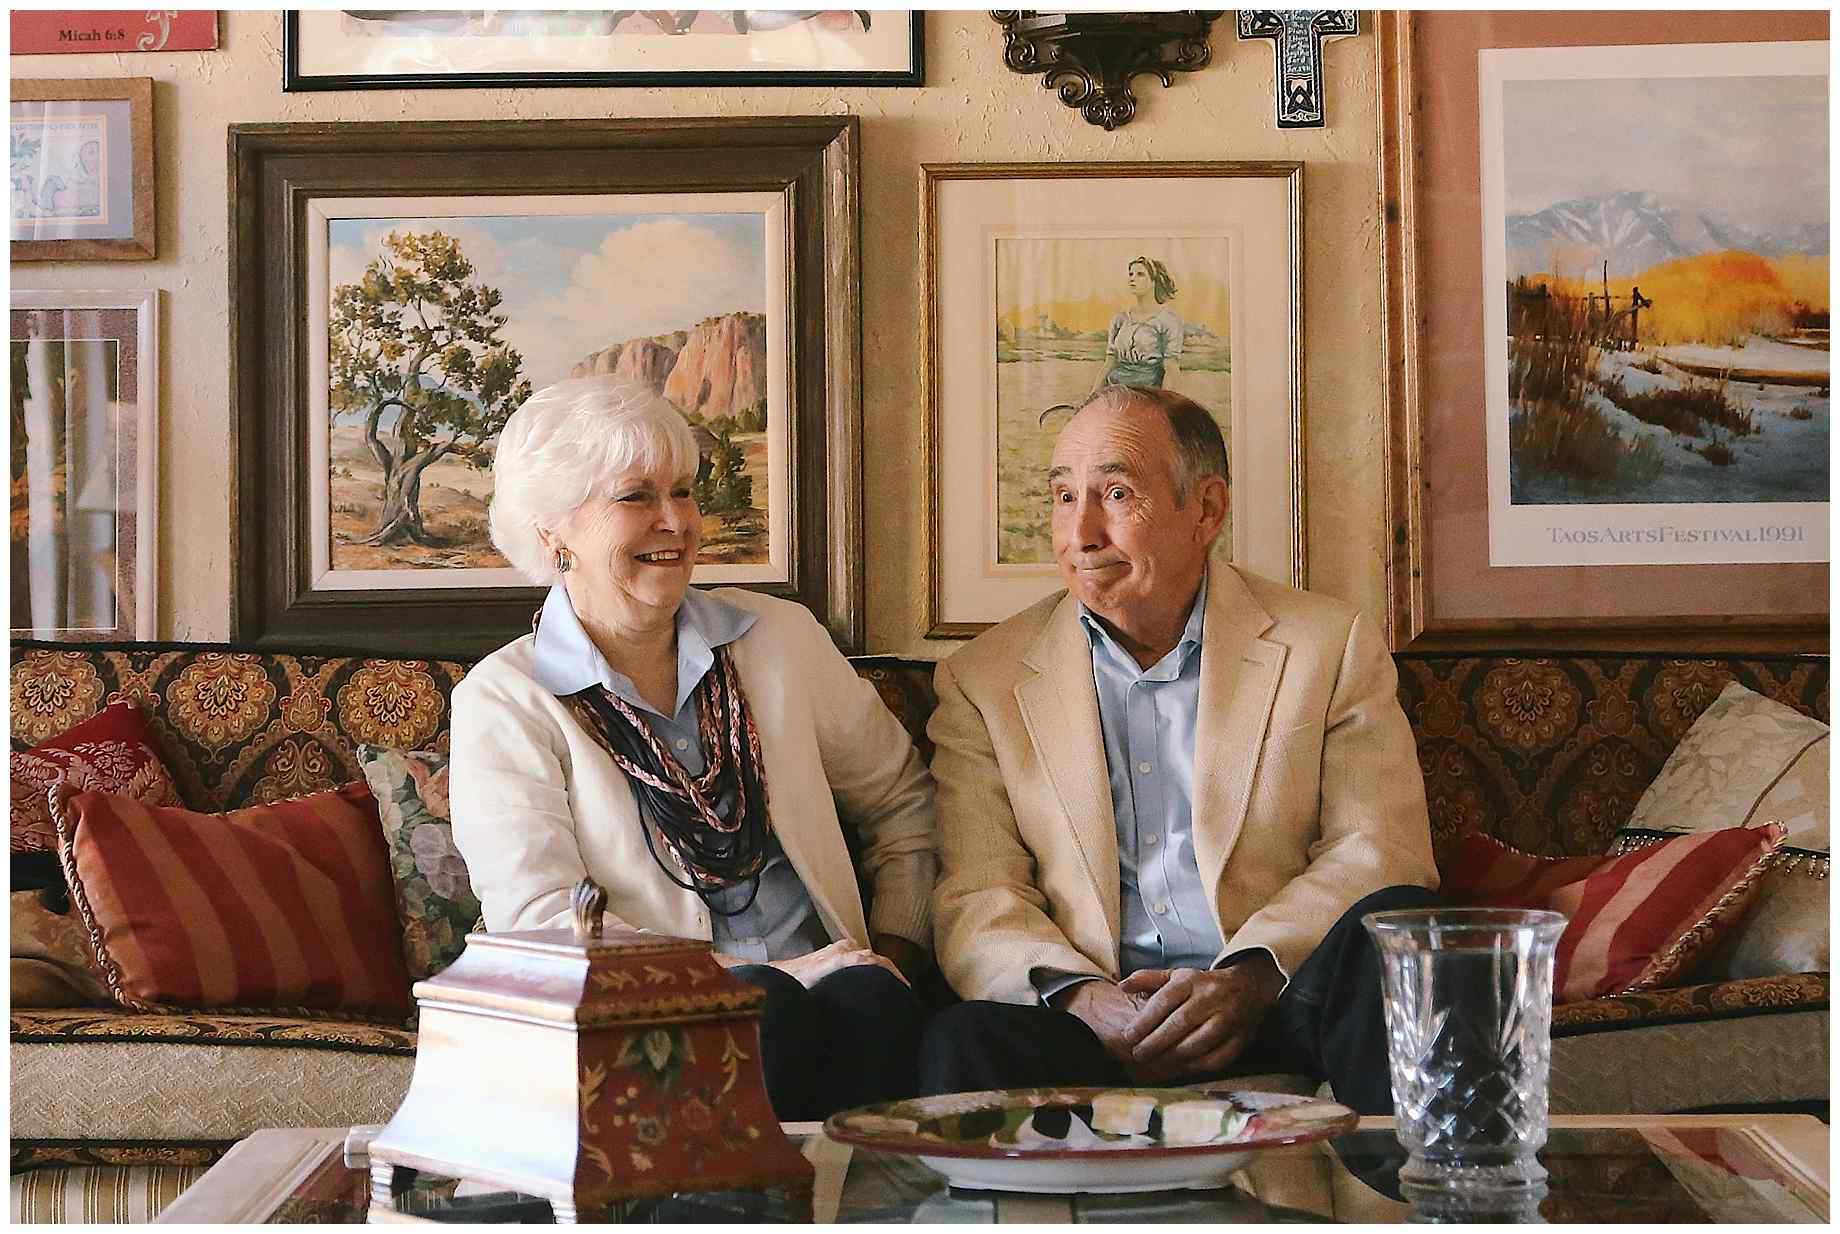 50-years-of-marriage-003